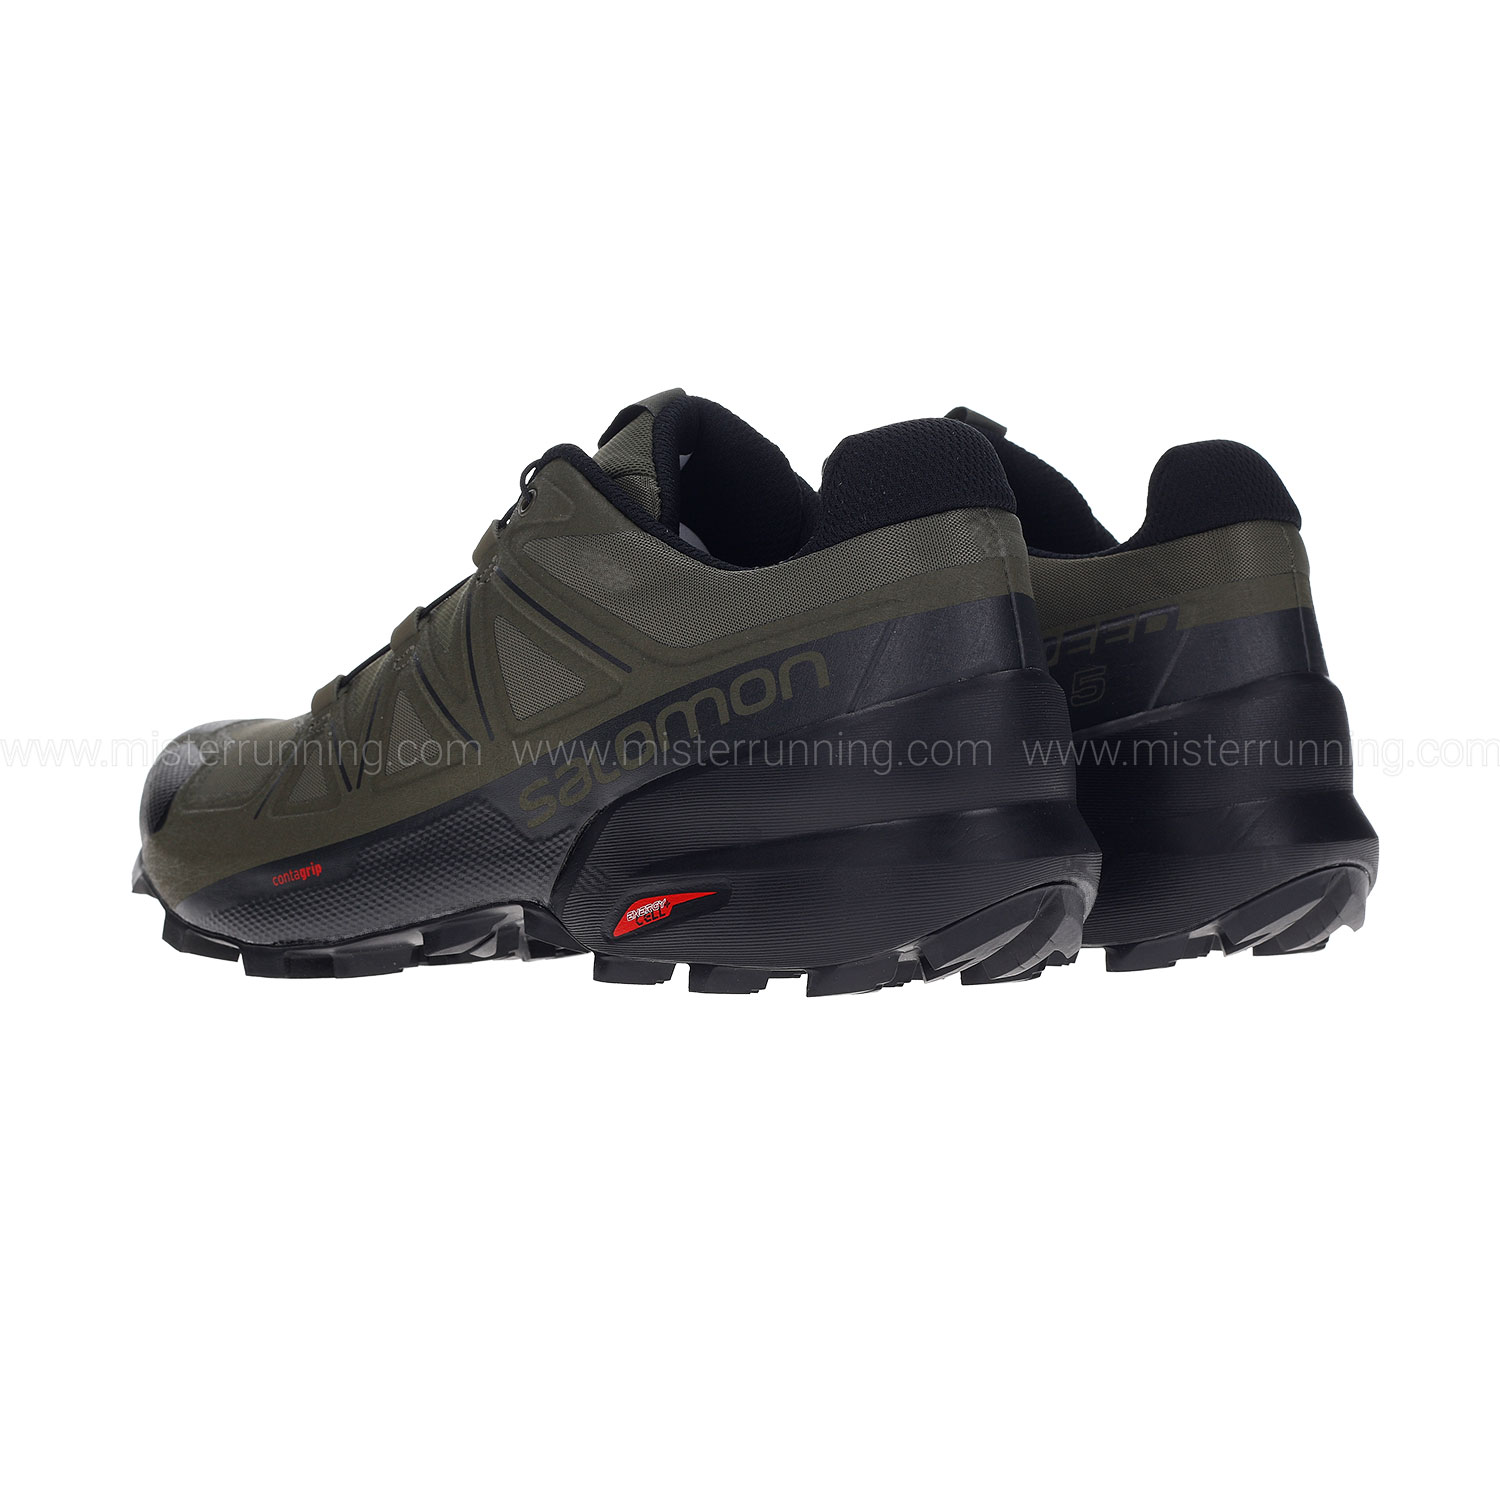 Salomon Speedcross 5 - Grape Leaf/Black/Phantom